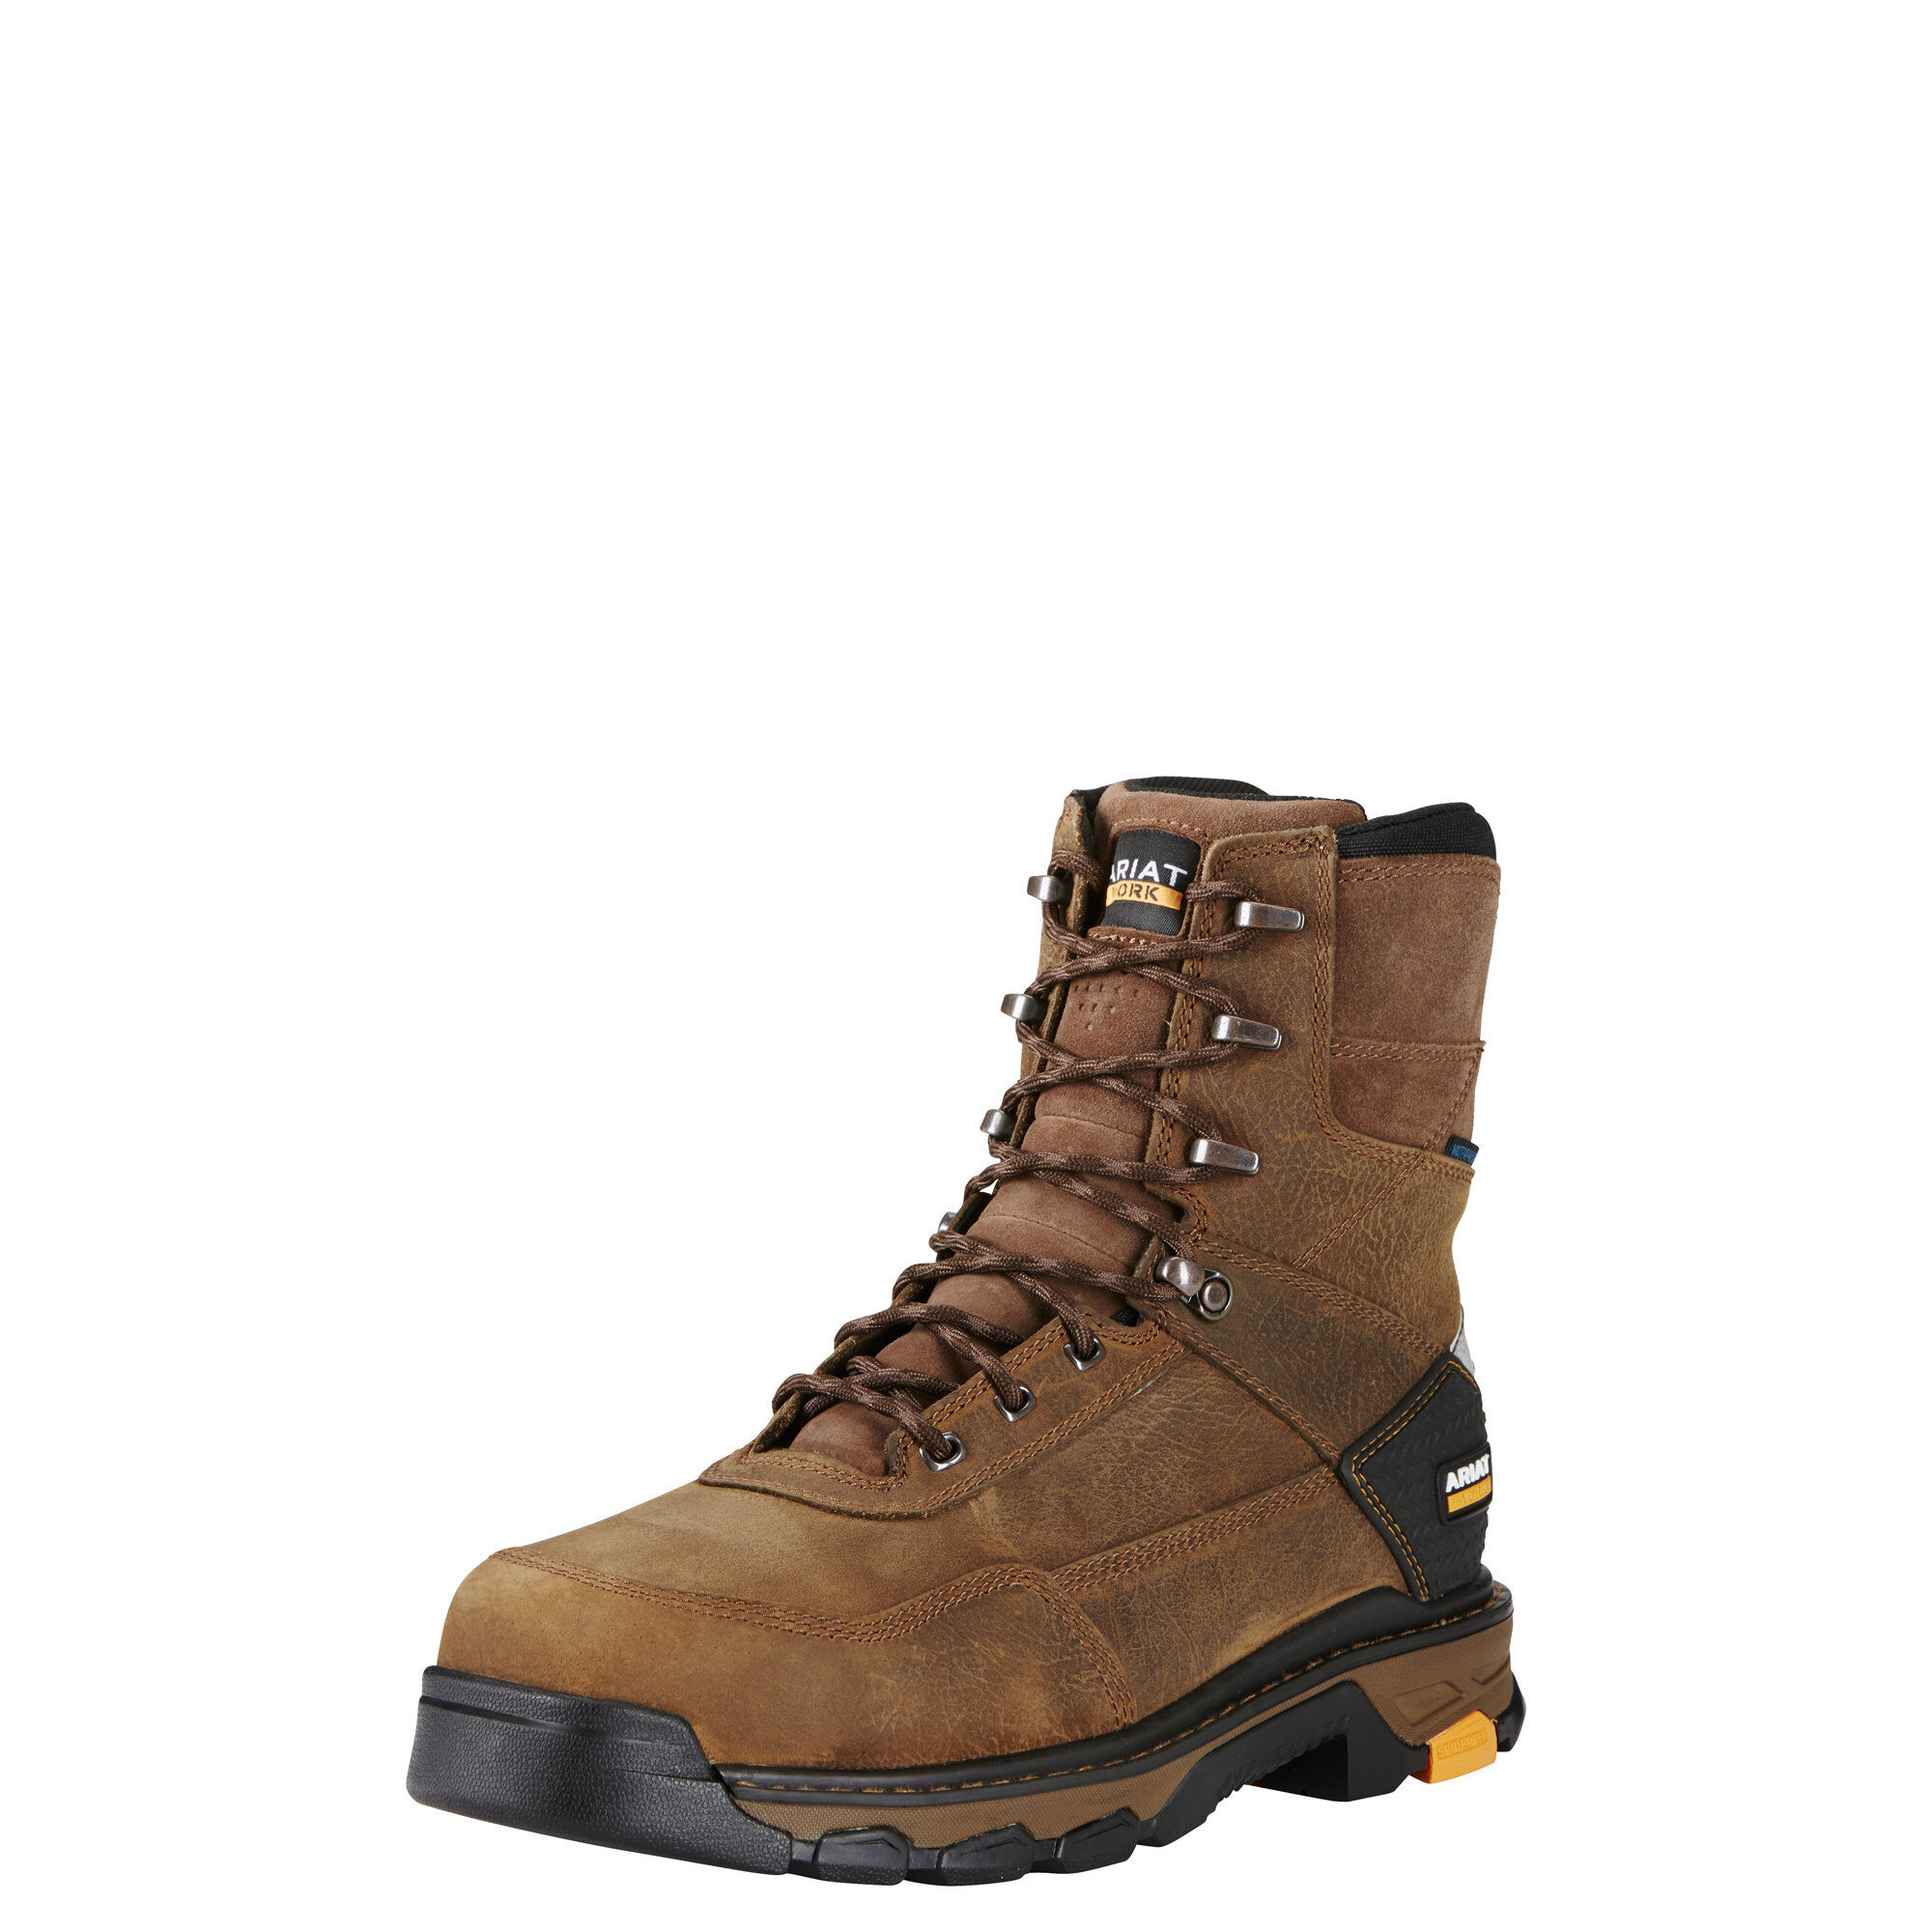 "Intrepid 8"" Waterproof Composite Toe Work Boot"